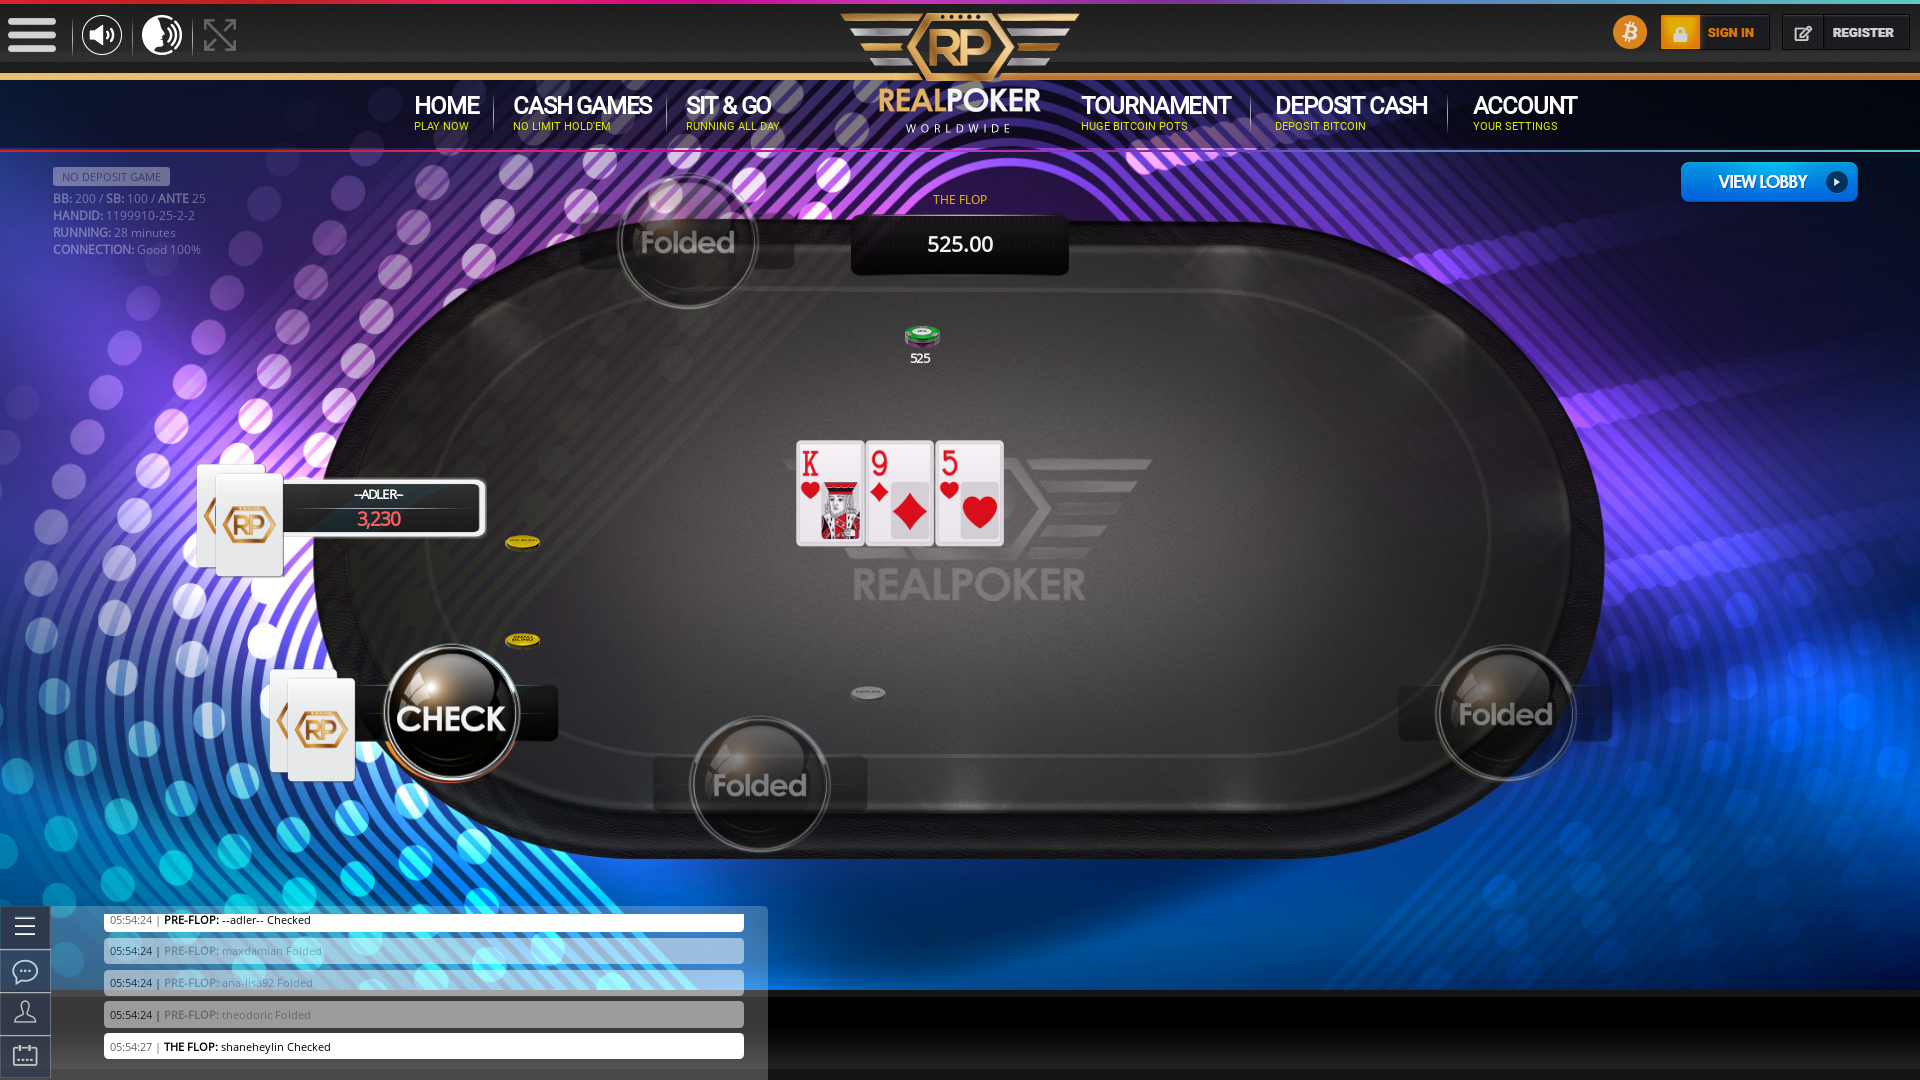 Brazil online poker game on a 10 player table in the 28th minute of the meeting